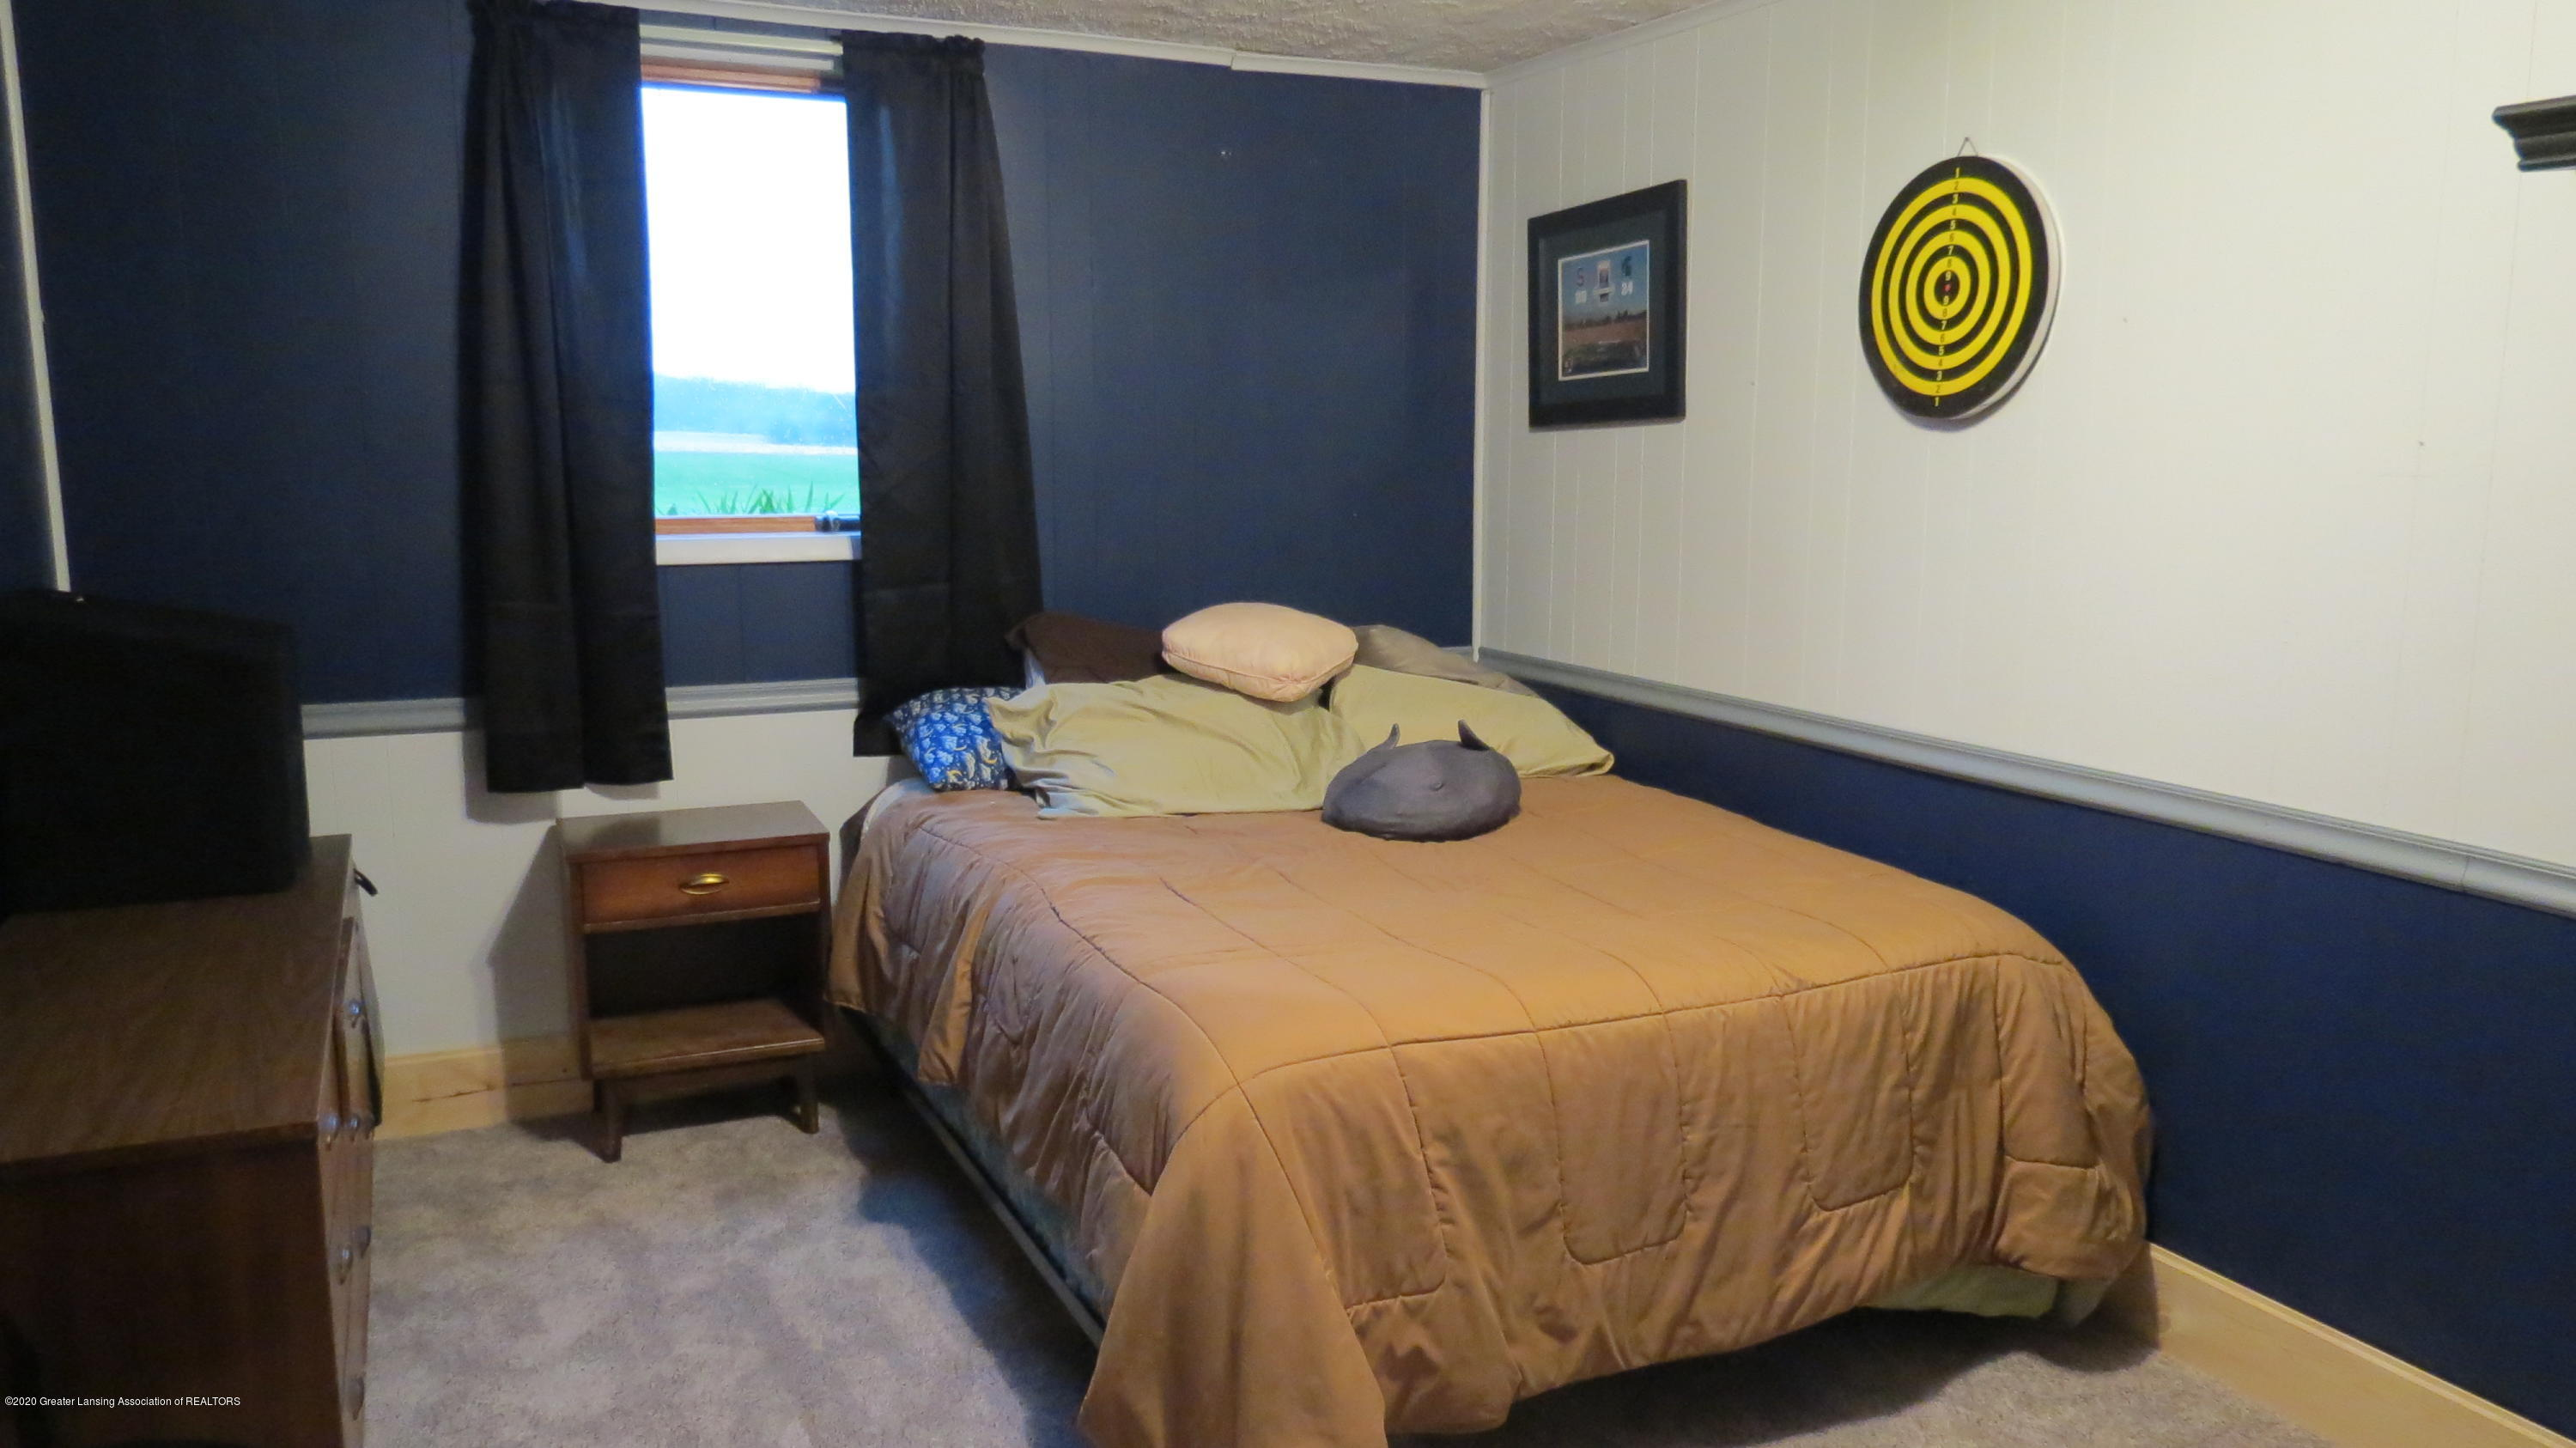 5177 Faragher Rd - Bedroom - 25